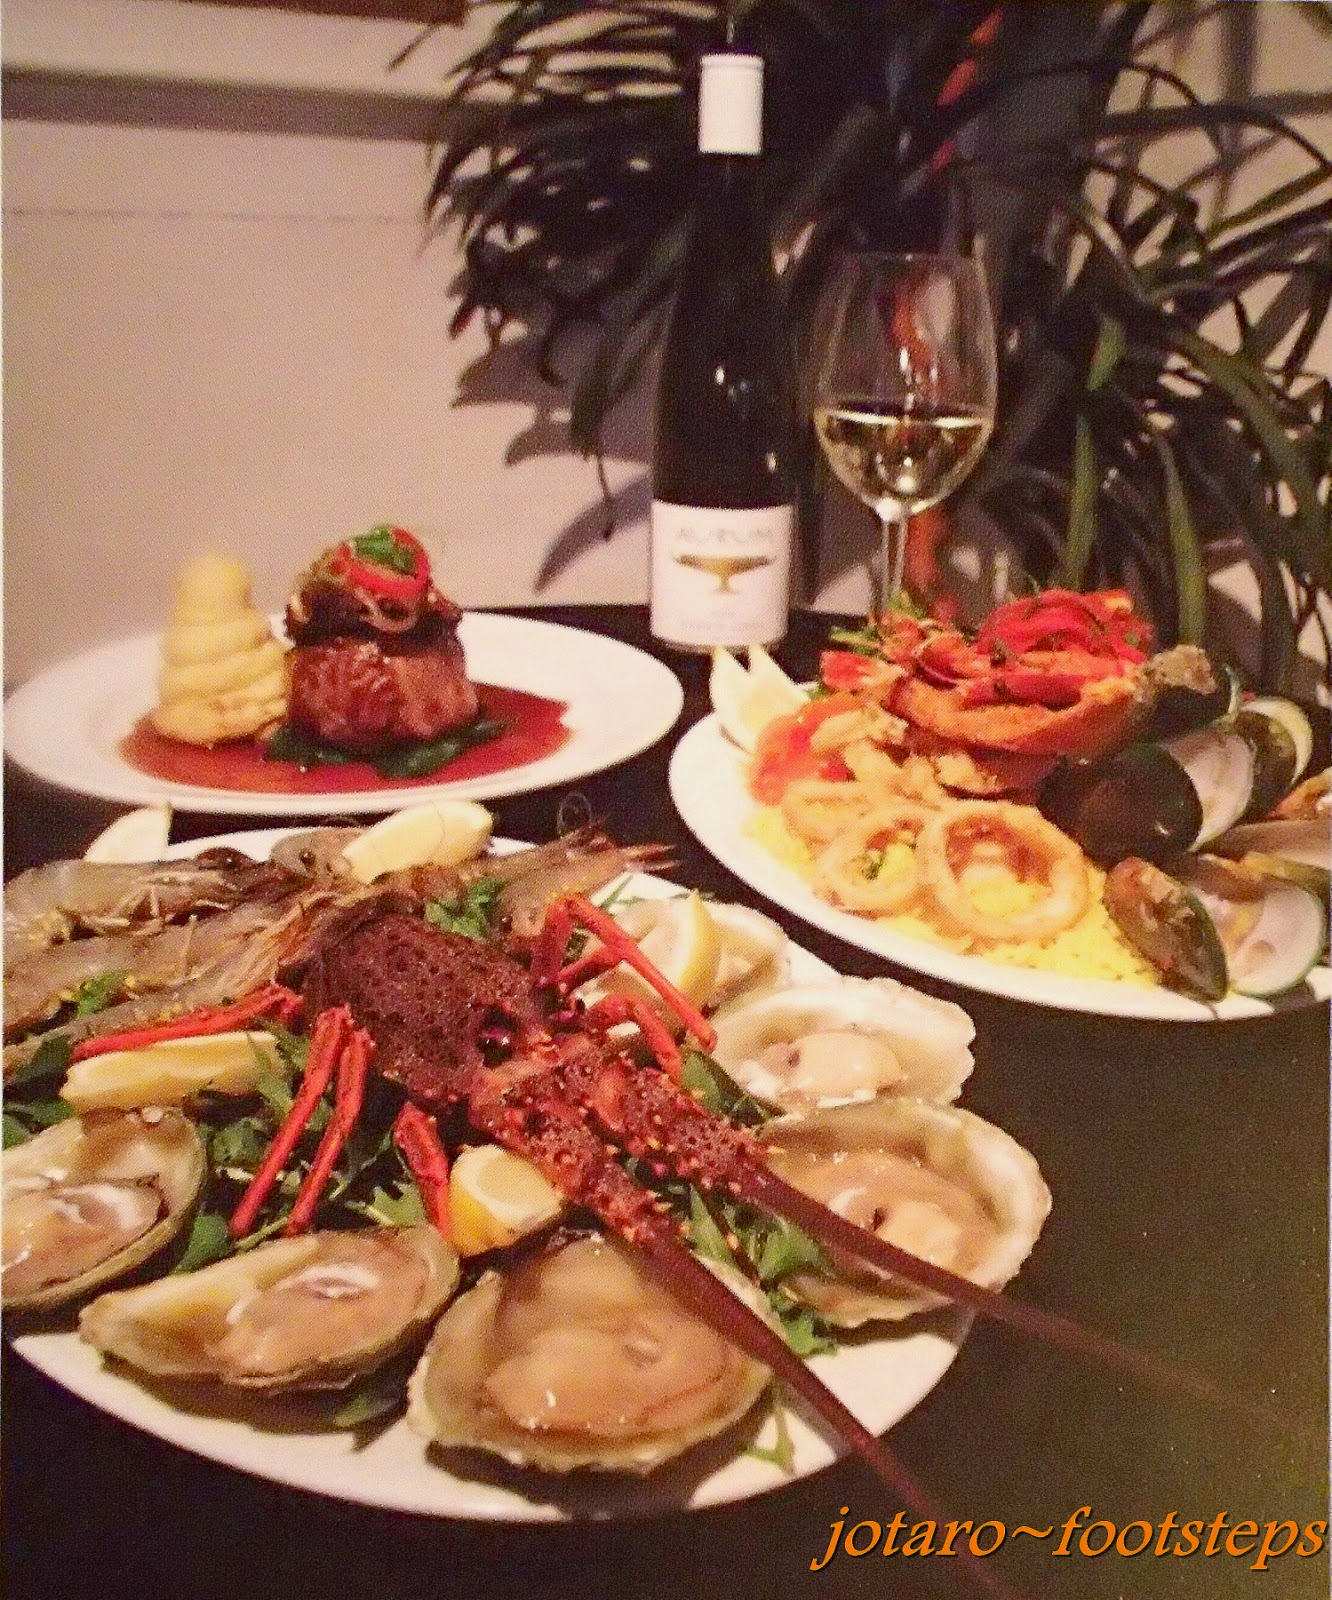 Having Heard Much About How Good New Zealand S Oysters Are We Were Attracted By Their Poster Of A Platter Tempting Freshly Shucked